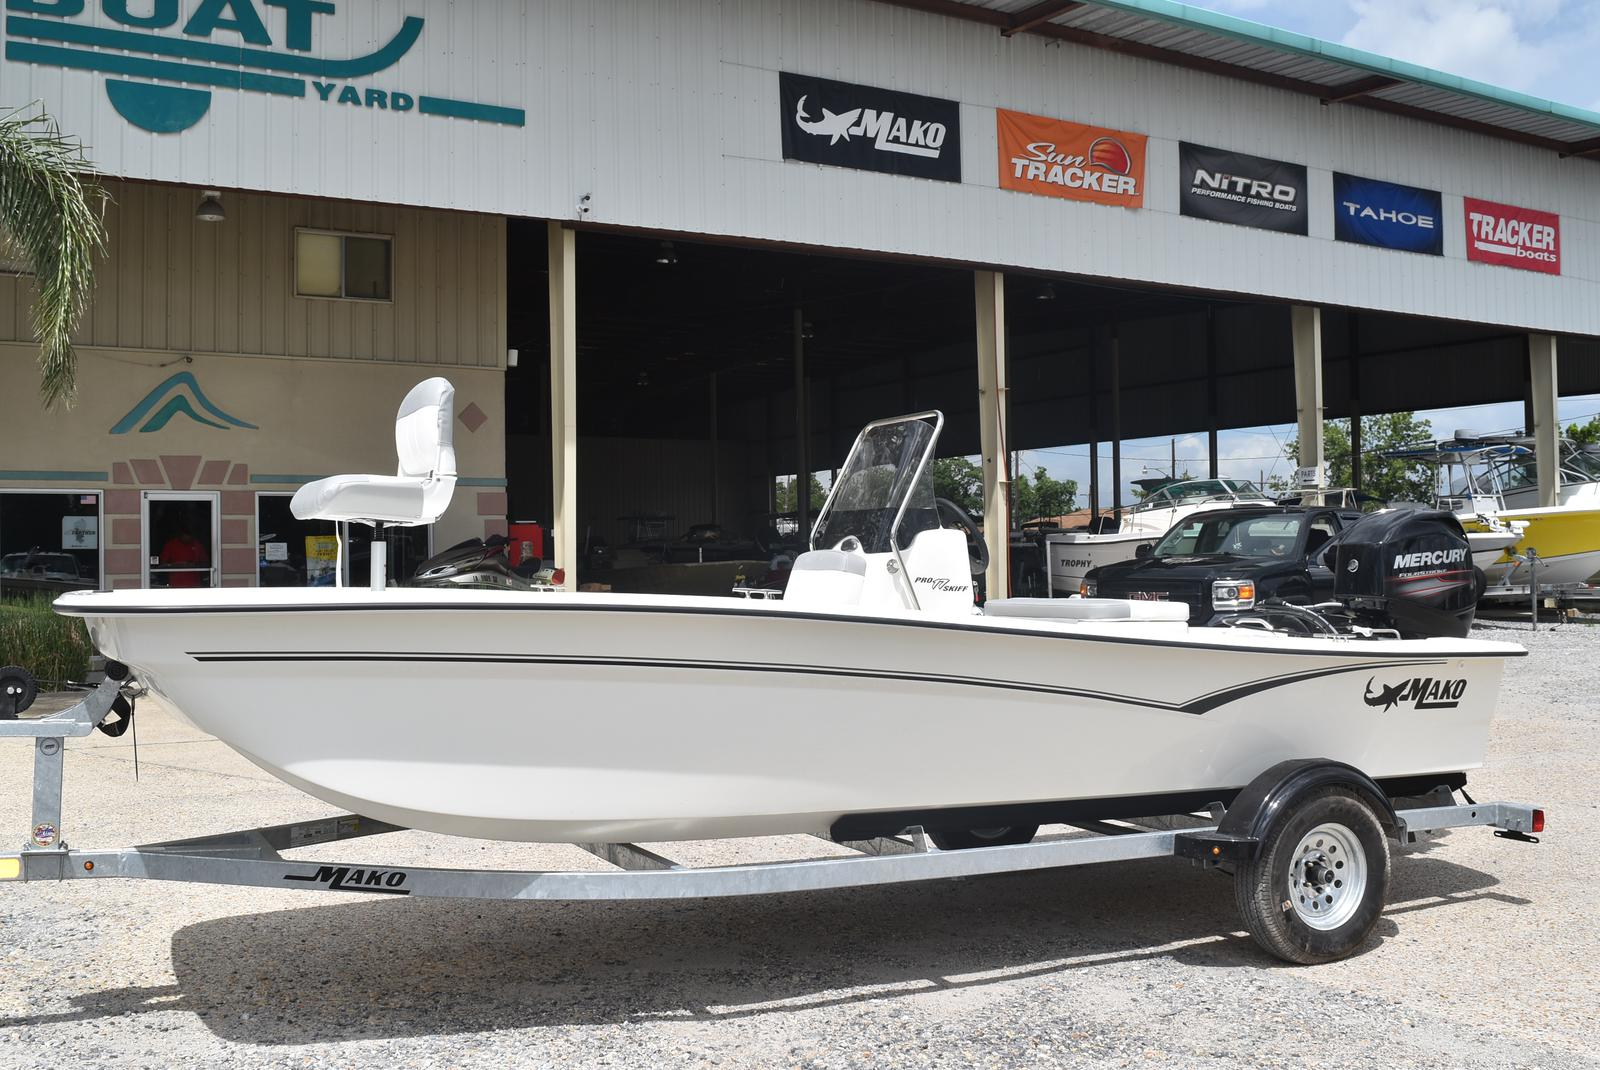 2020 Mako boat for sale, model of the boat is Pro Skiff 17, 75 ELPT & Image # 112 of 702